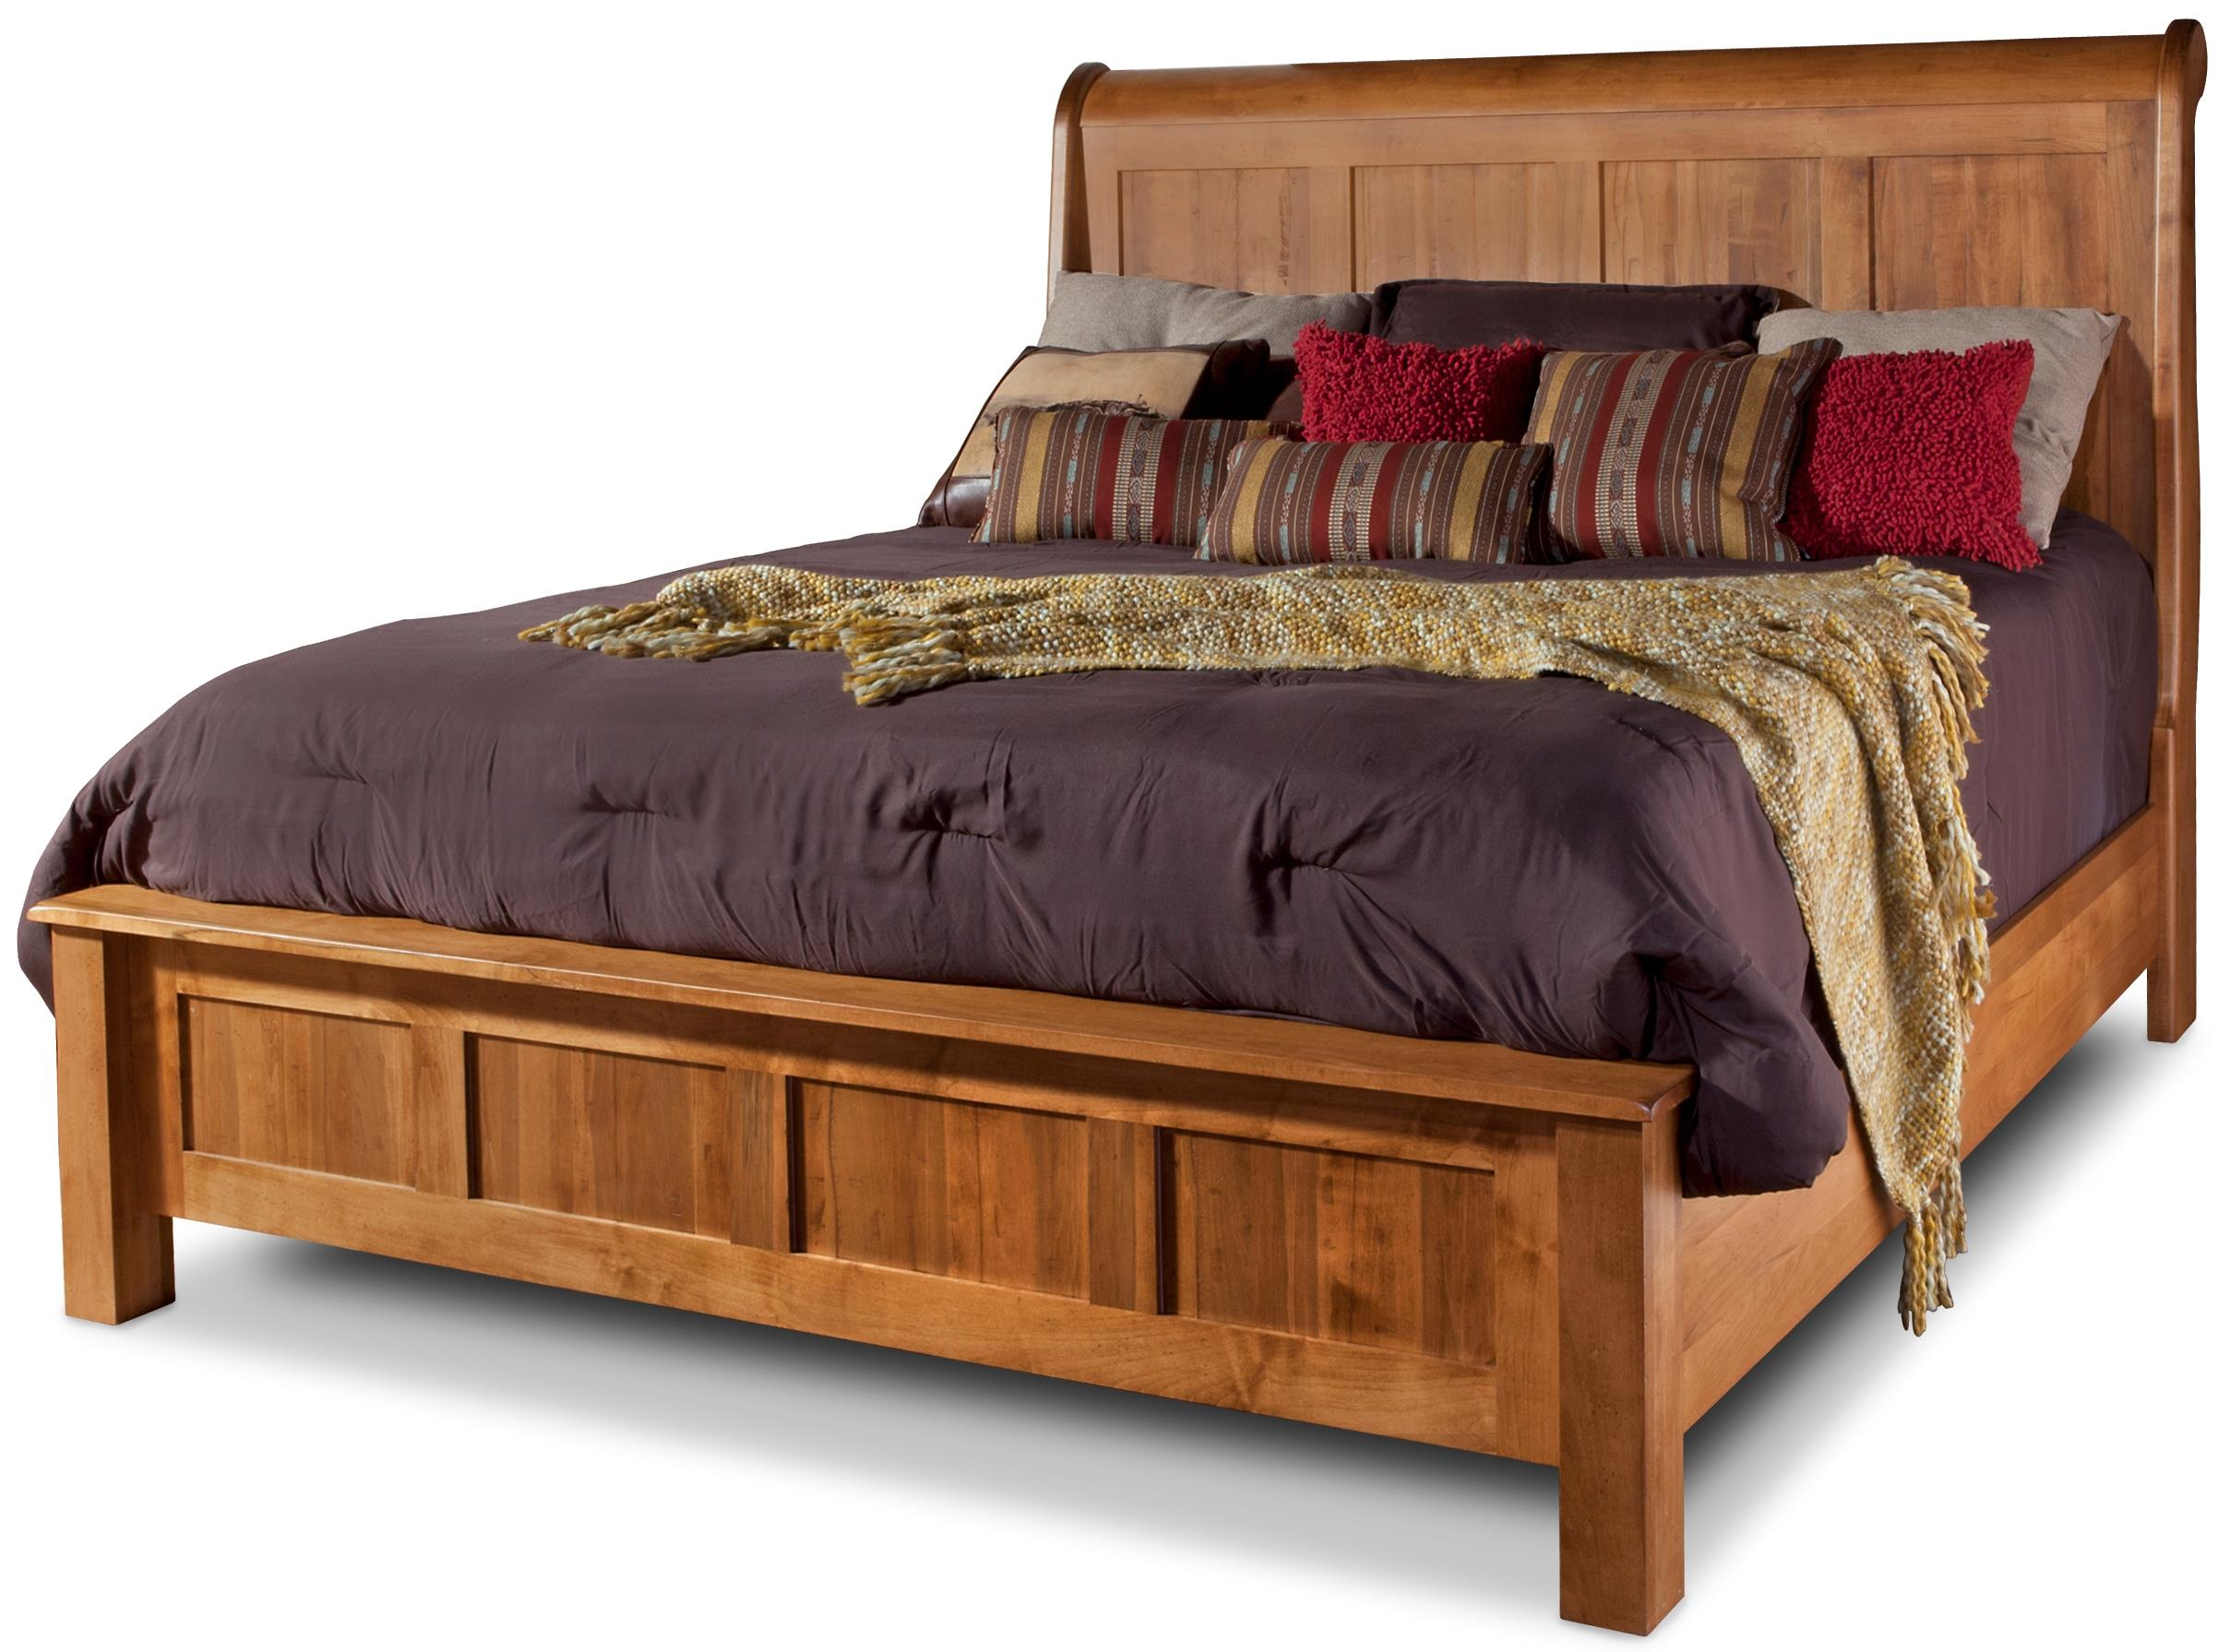 Daniel s Amish Lewiston King Sleigh Bed with Low Footboard